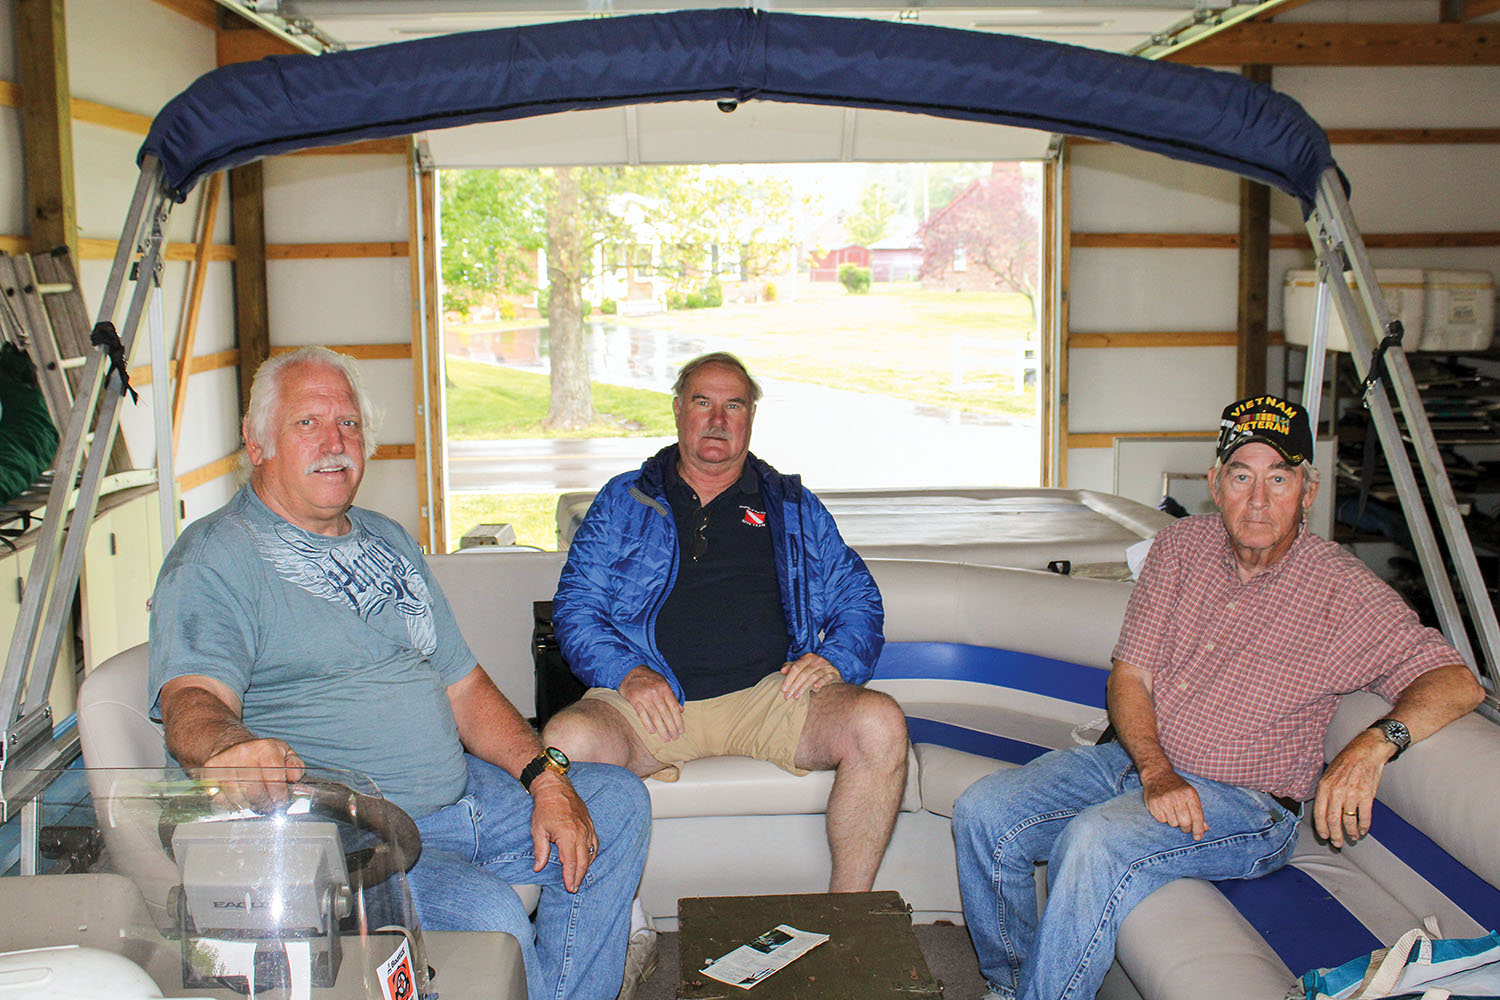 Friends Capt. Bob Cherry Jr., Sherman Jones and Sterling Edwards (left to right) prepare to take Cherry's pontoon boat, My Cheri, down the entire 652-mile navigable length of the Tennessee River. (Photo by Shelley Byrne)